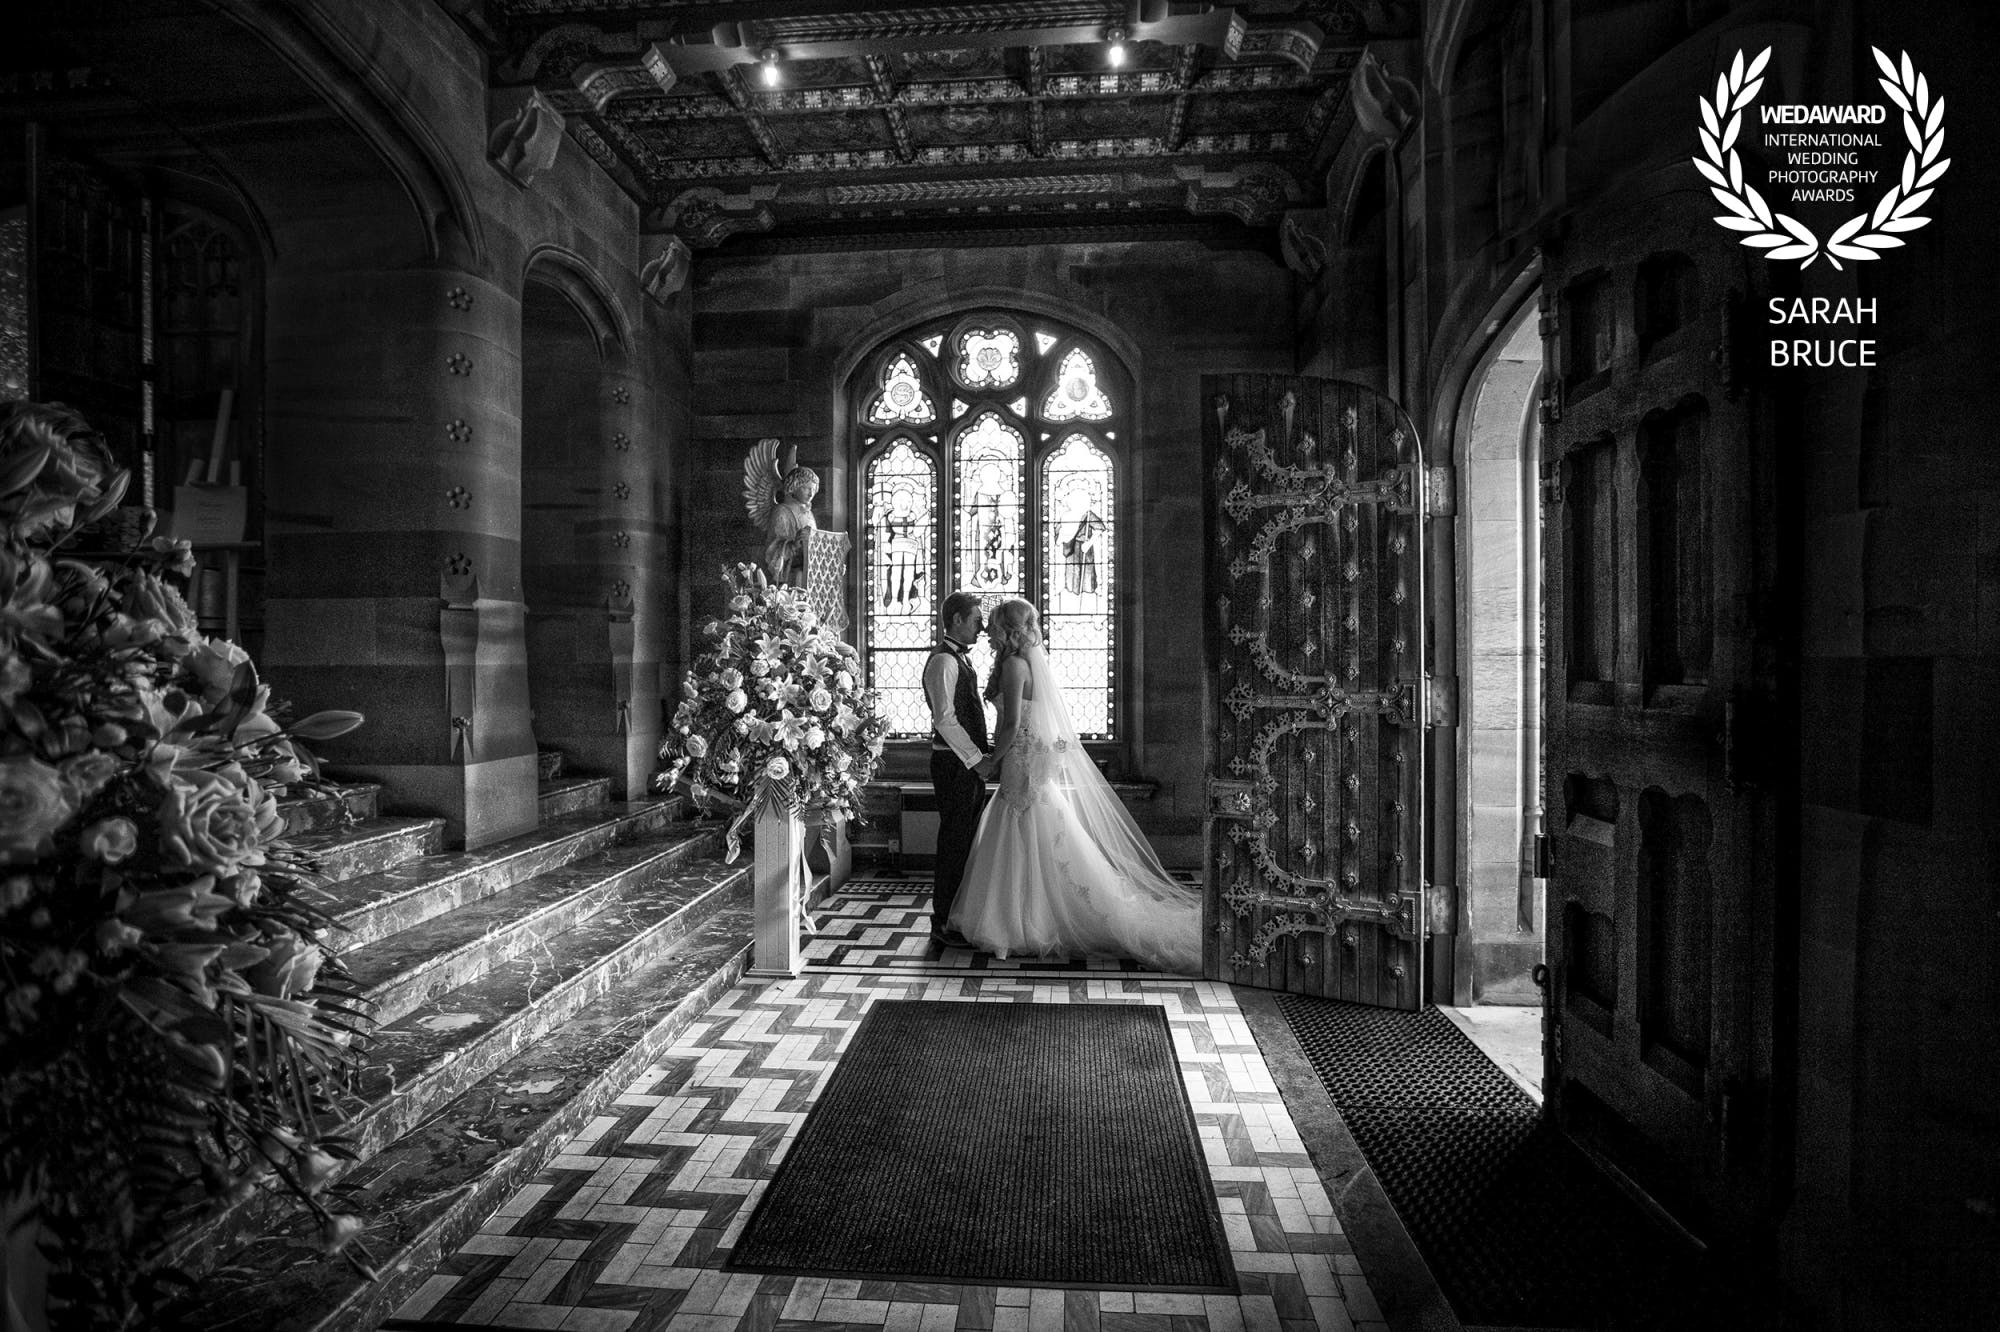 Sarah Bruce Award winning Wedding Photographer Yorkshire